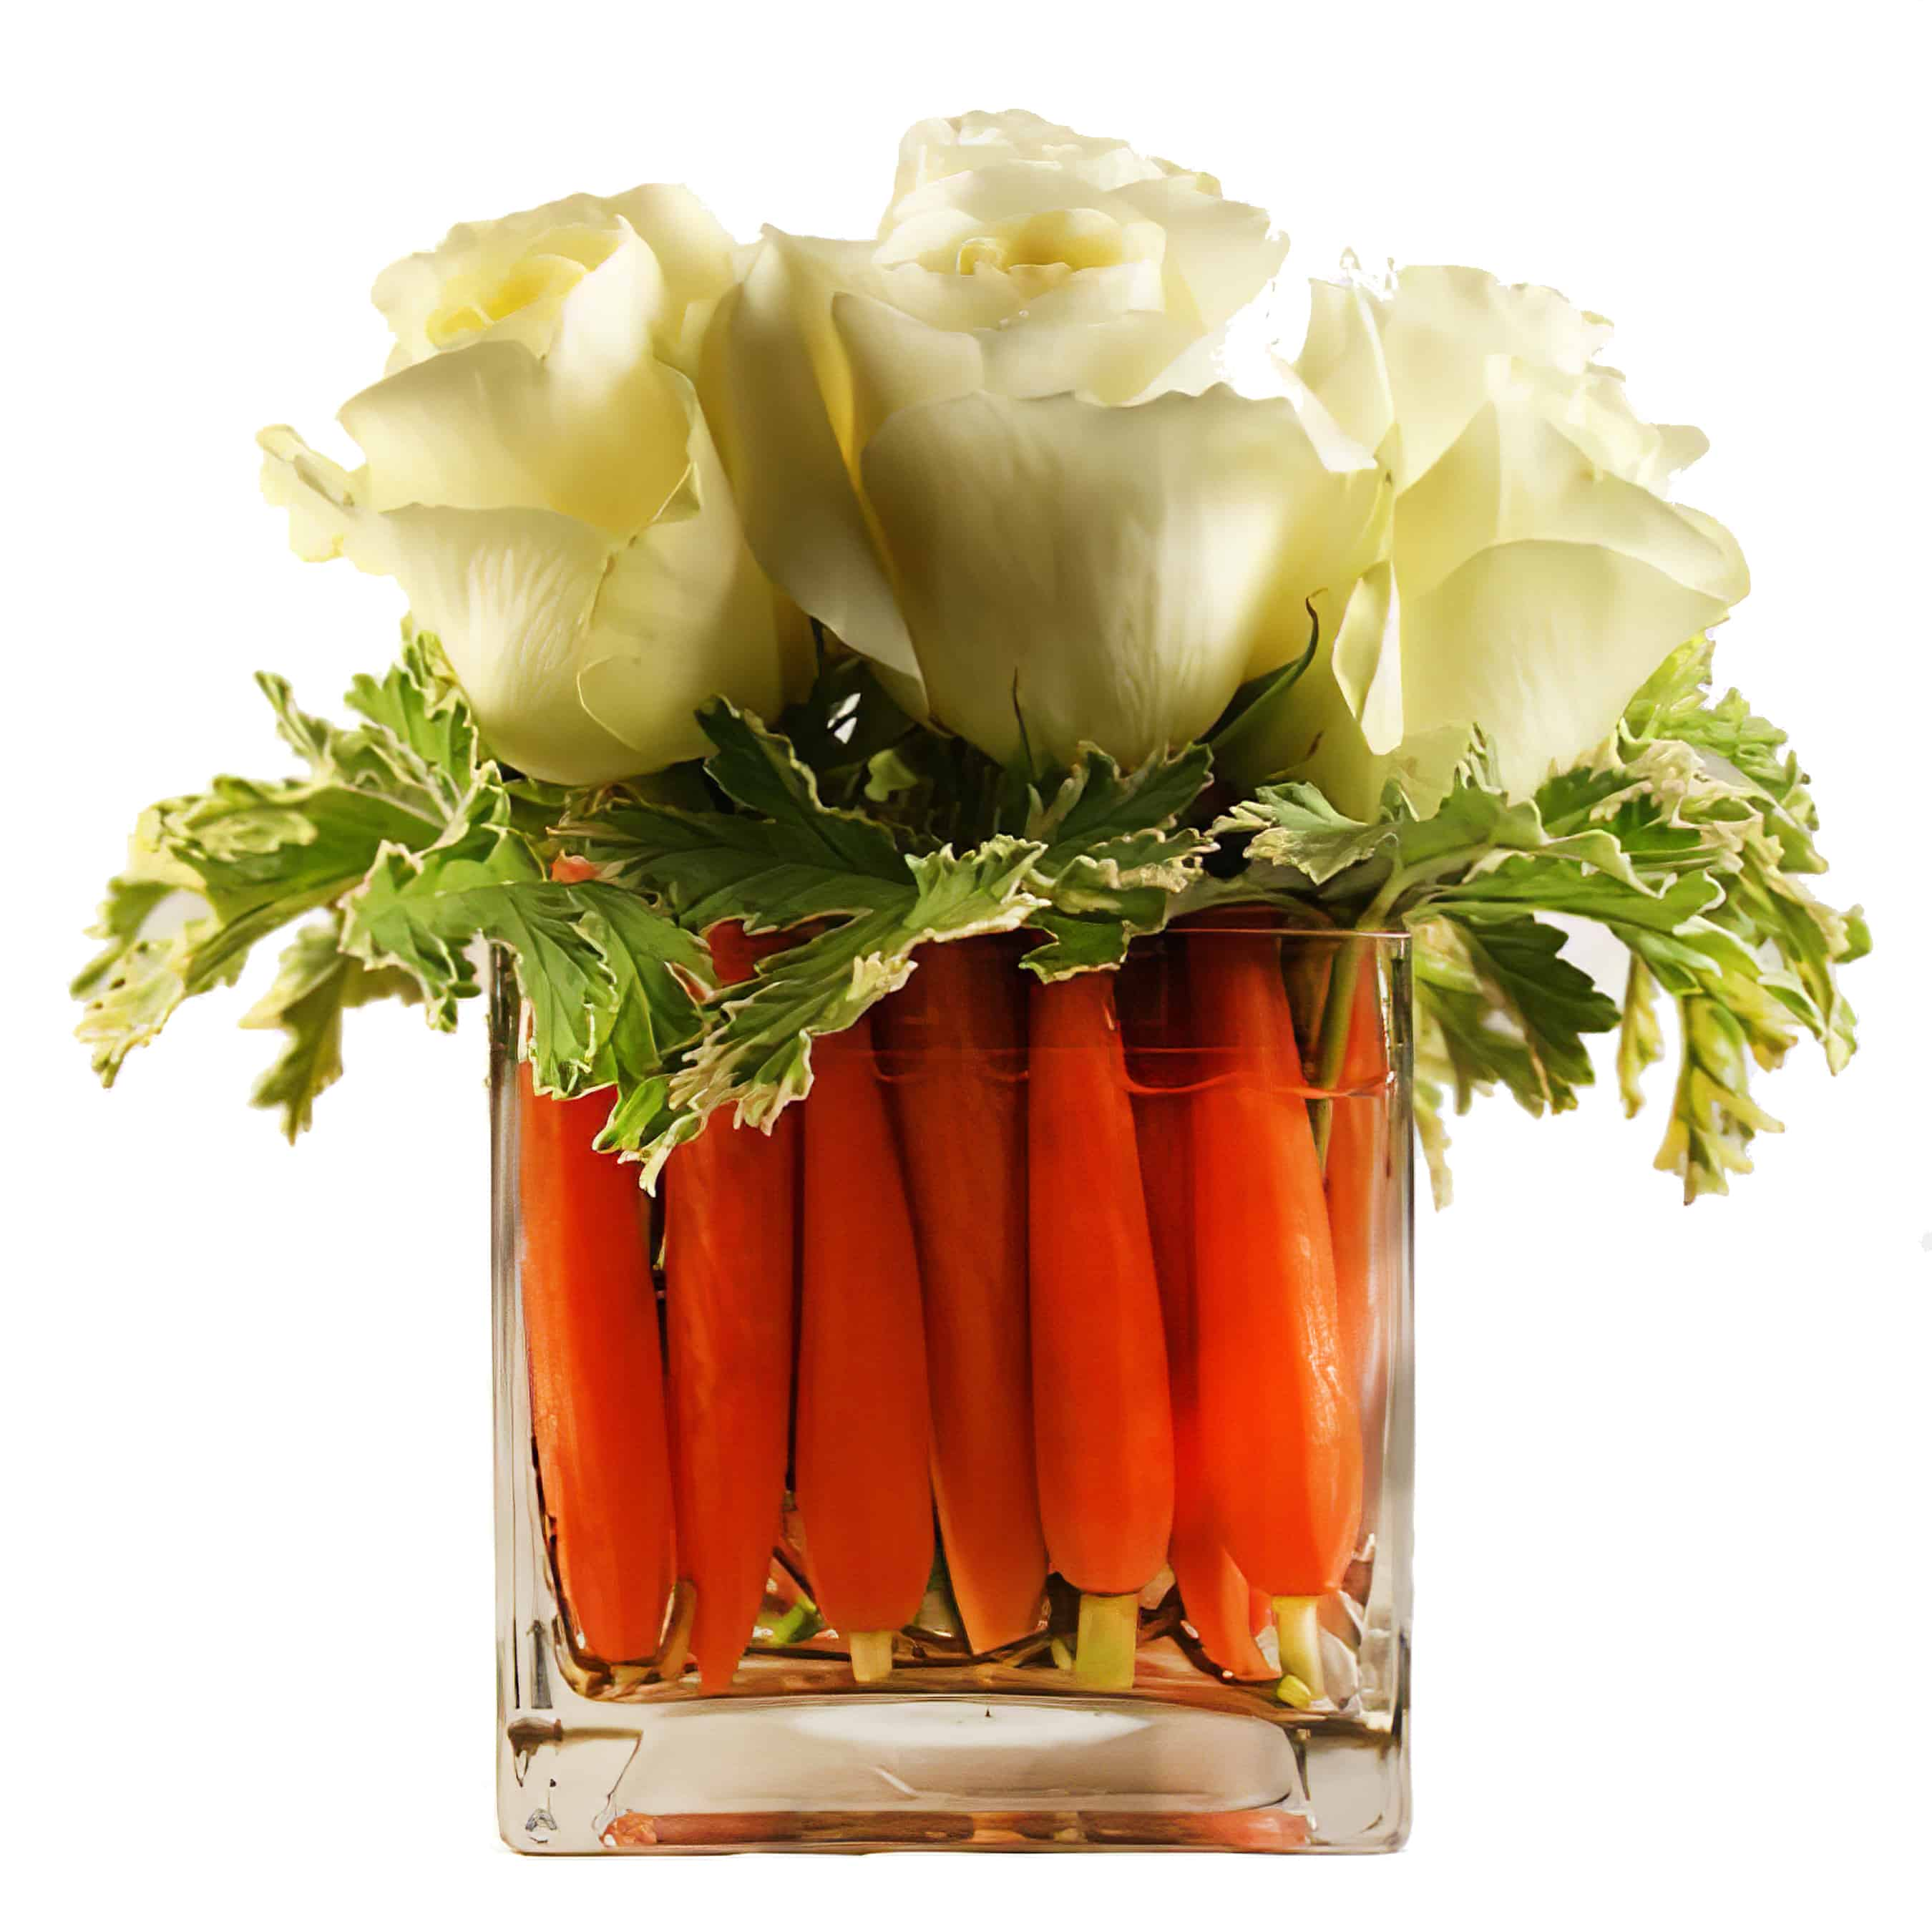 Carrot Cake Flower Arrangement